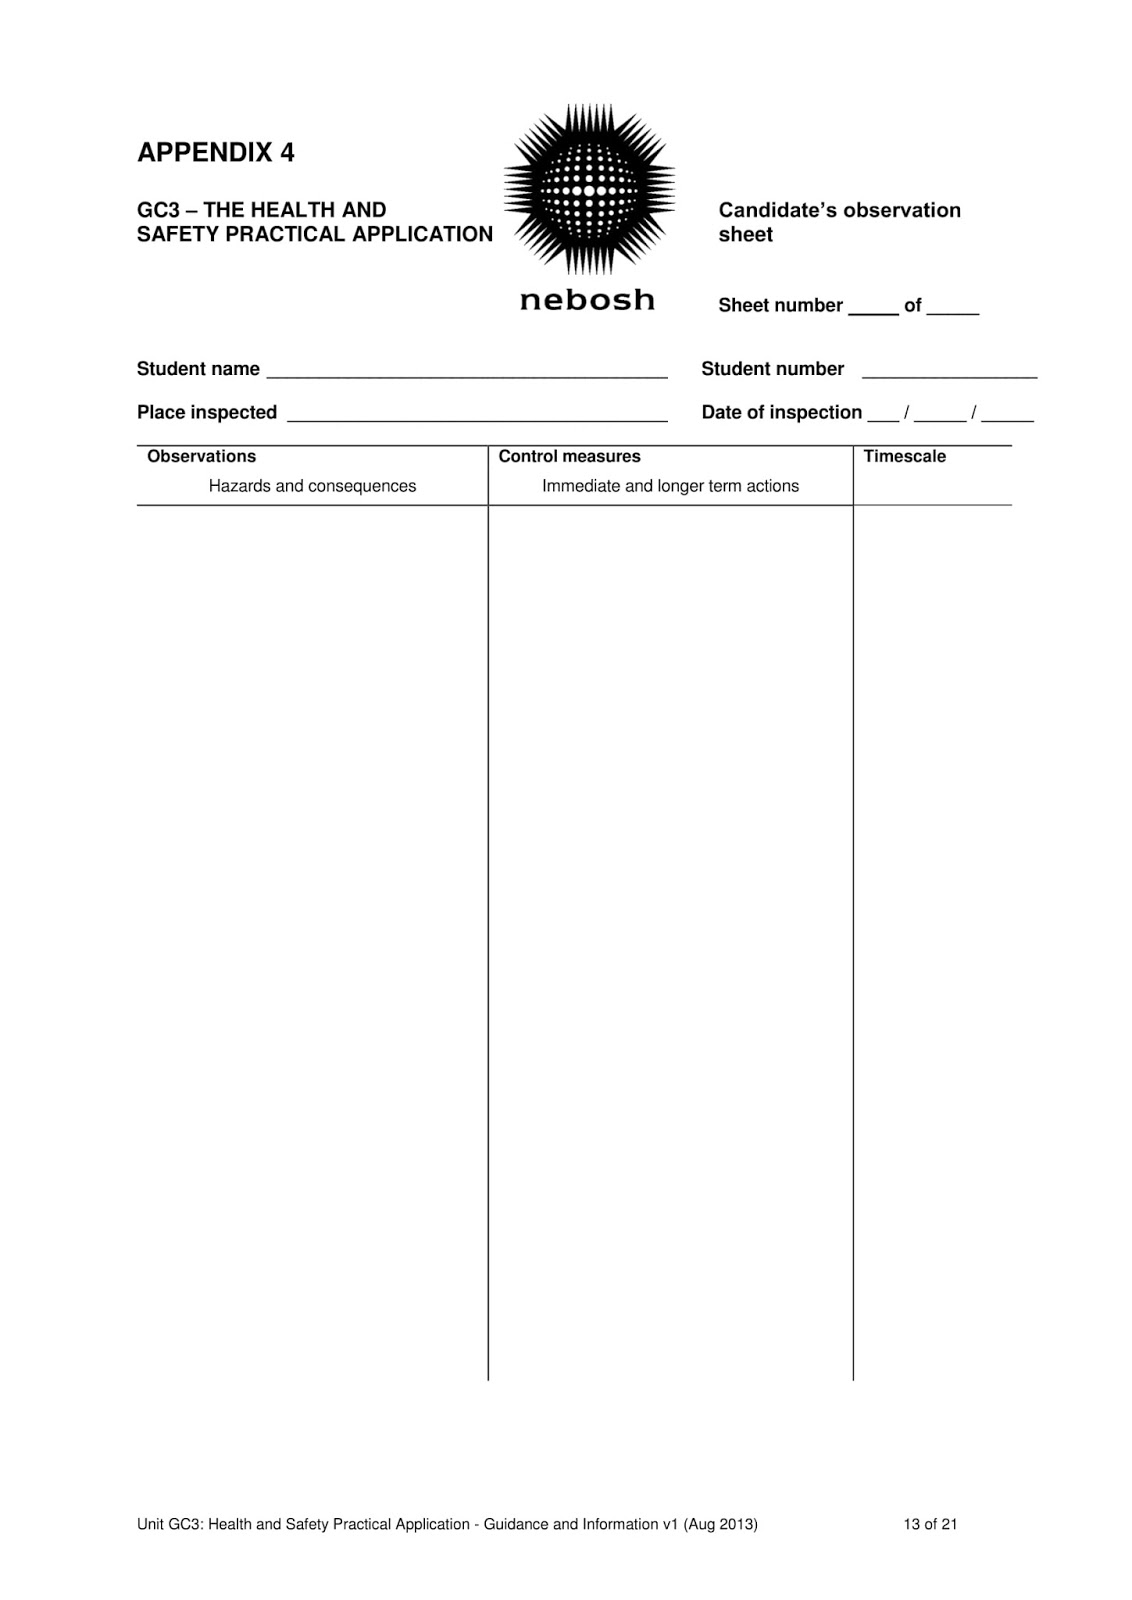 nebosh observation sheet example